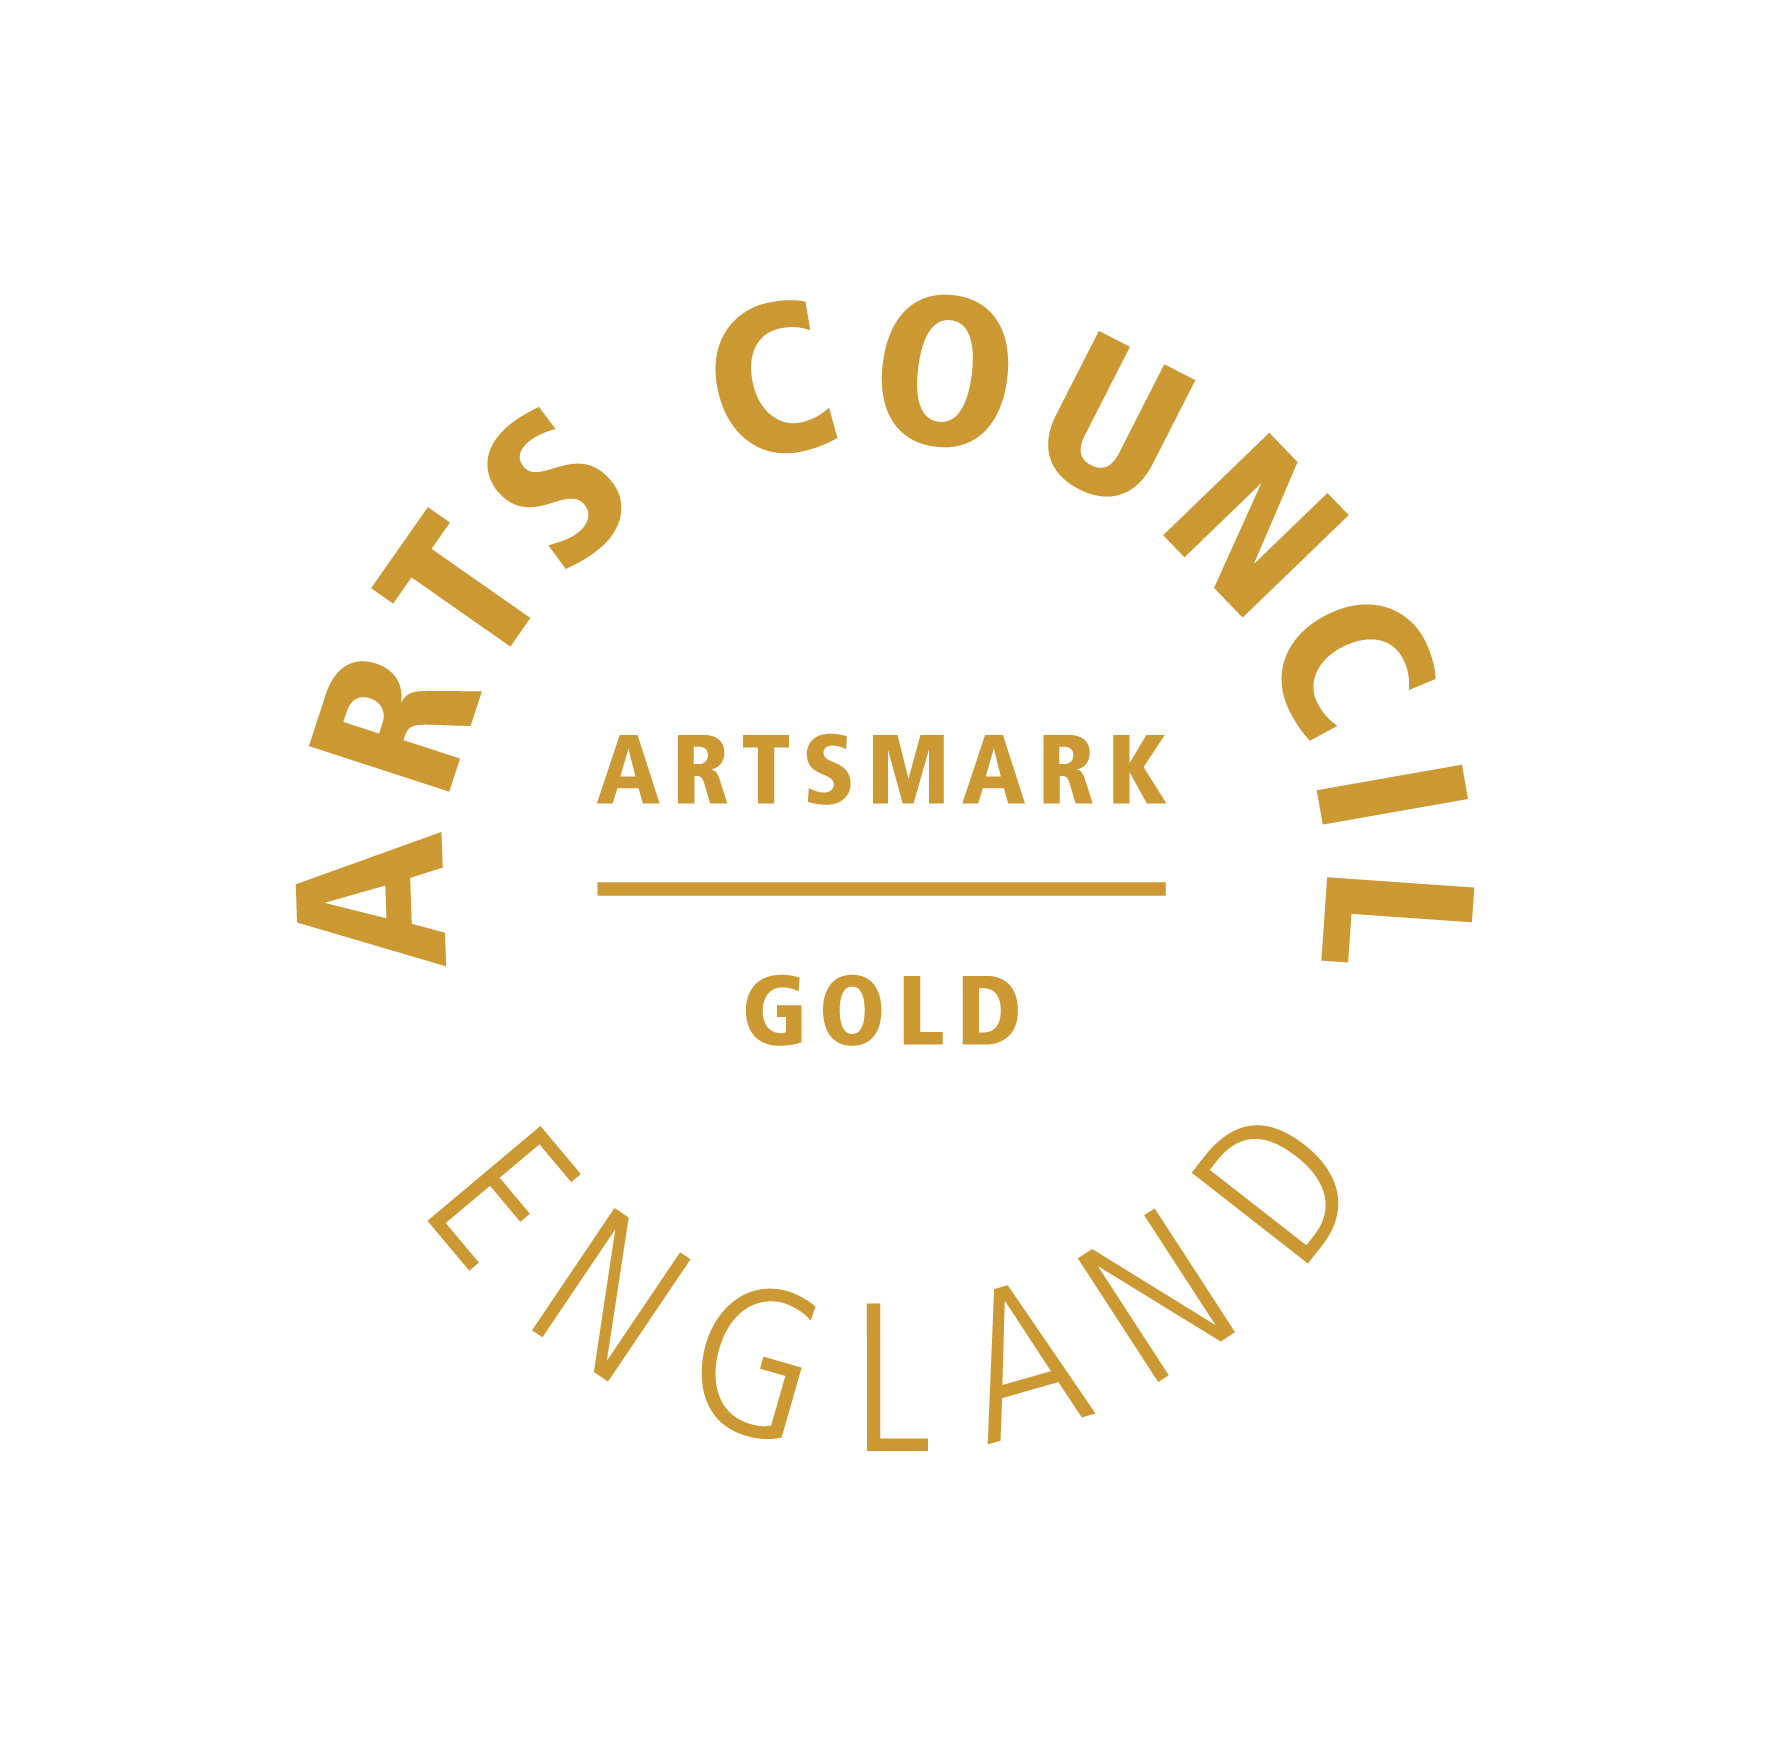 https://www.staidansschool.co.uk/wp-content/uploads/2018/07/ARTSMARKGOLD_RGB.jpg